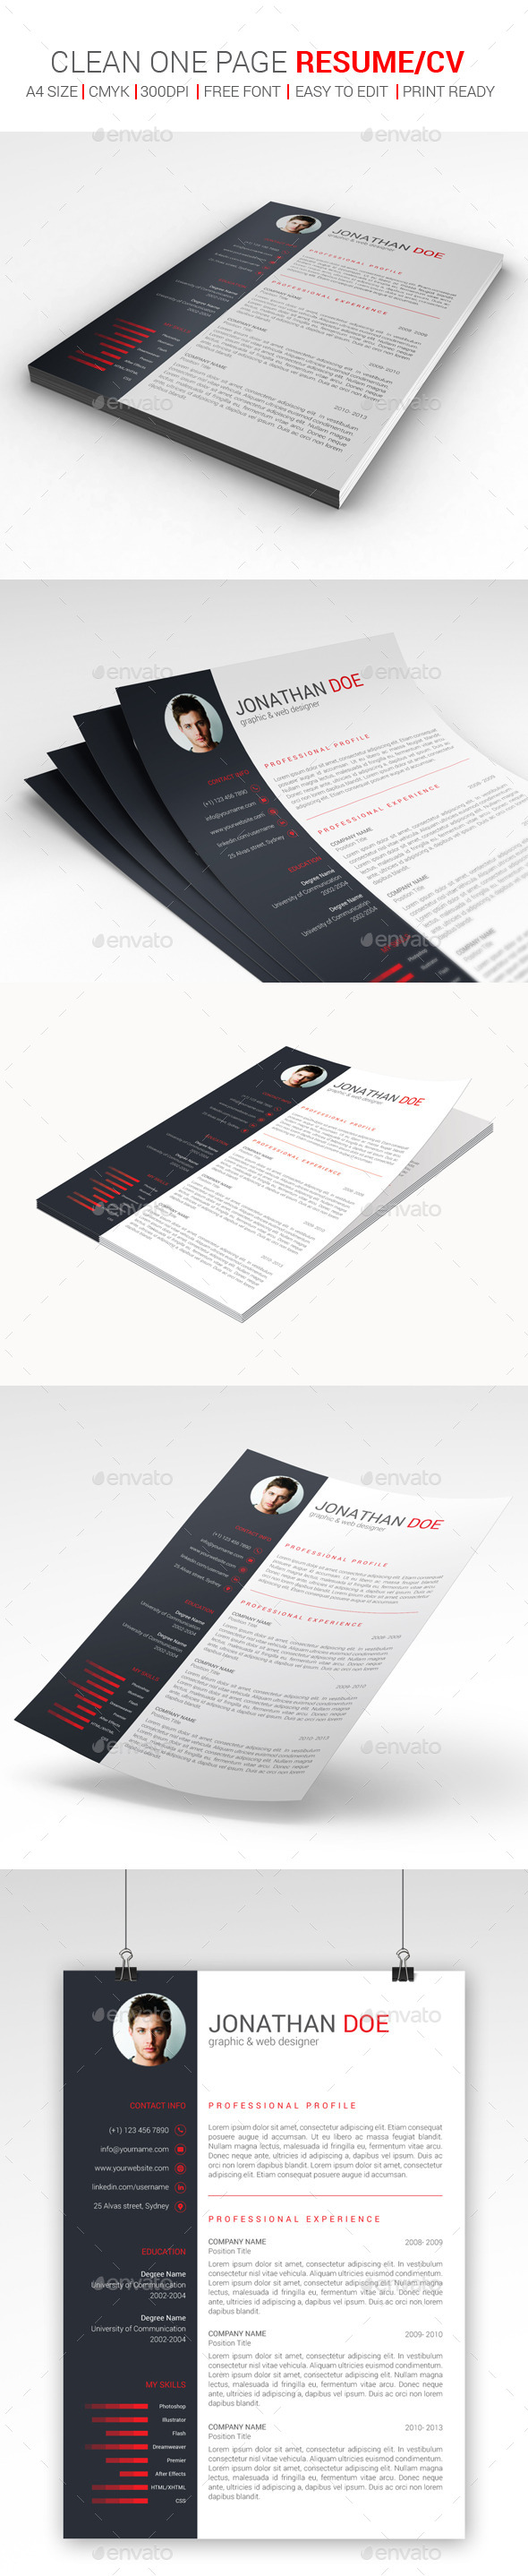 Clean One Page Resume CV